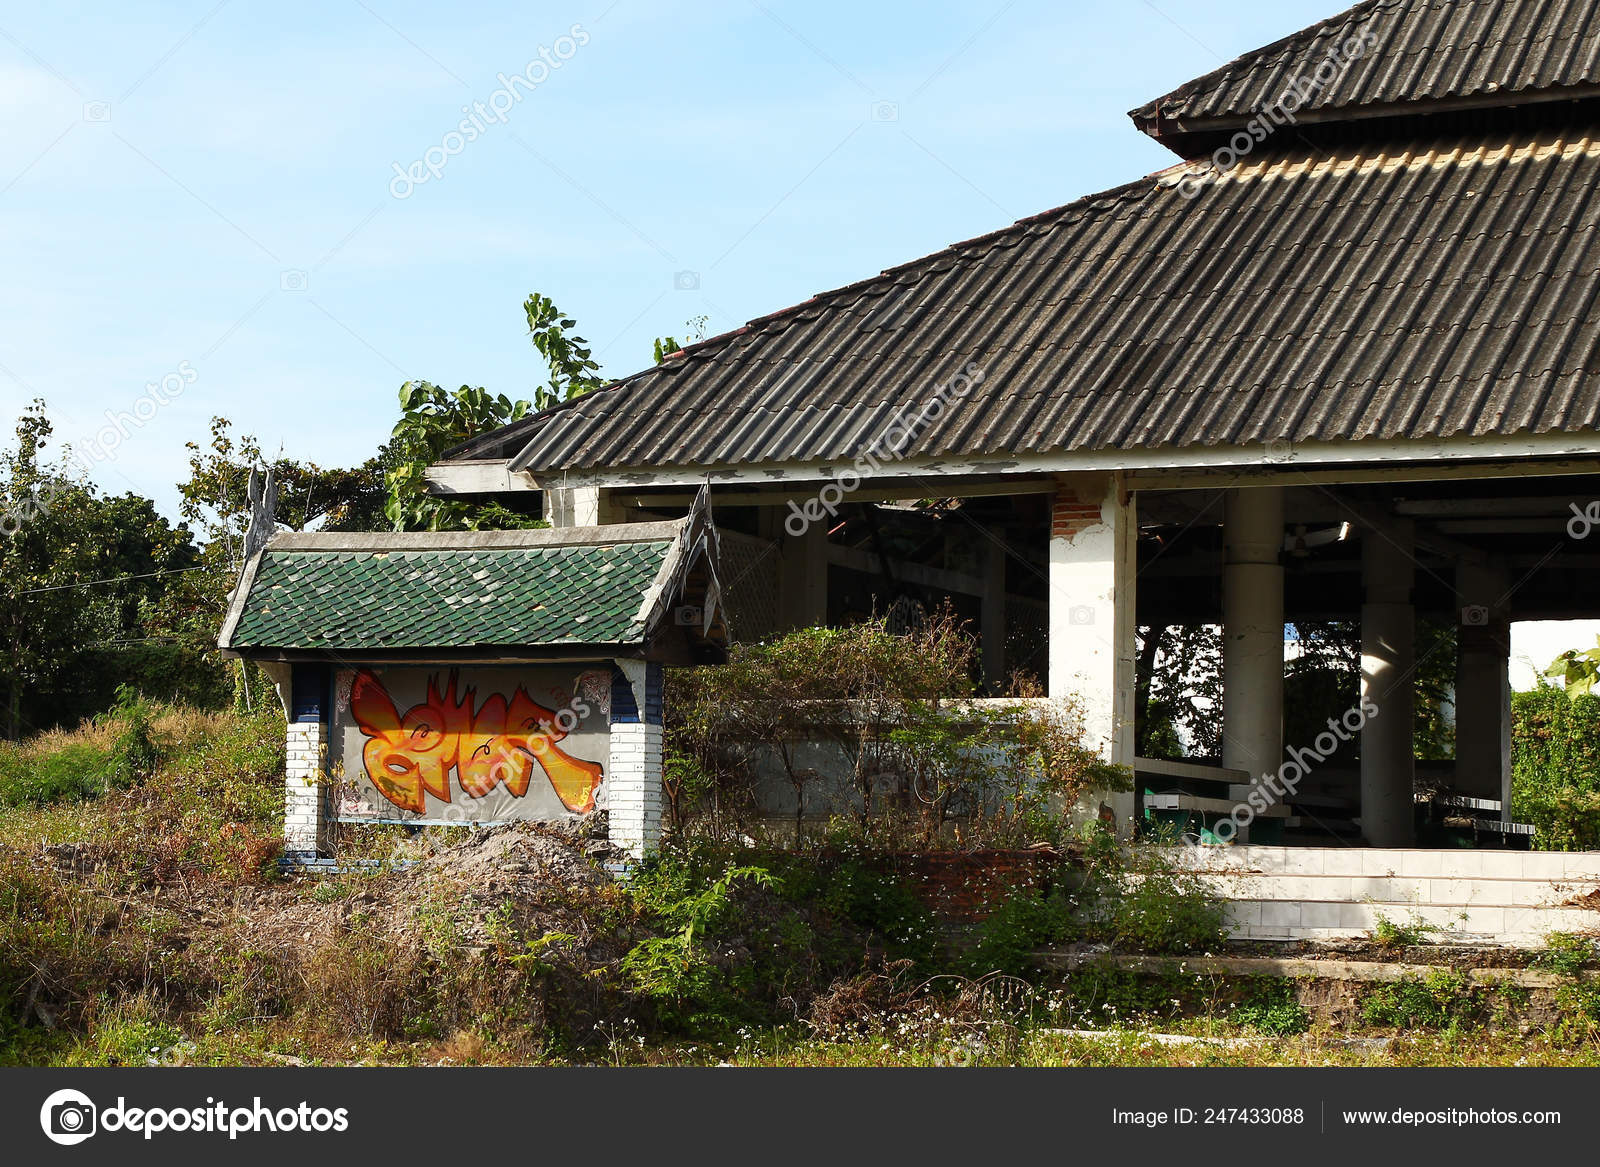 Cool Chiang Mai Thailand December 2017 View Canteen Stones Ocoug Best Dining Table And Chair Ideas Images Ocougorg